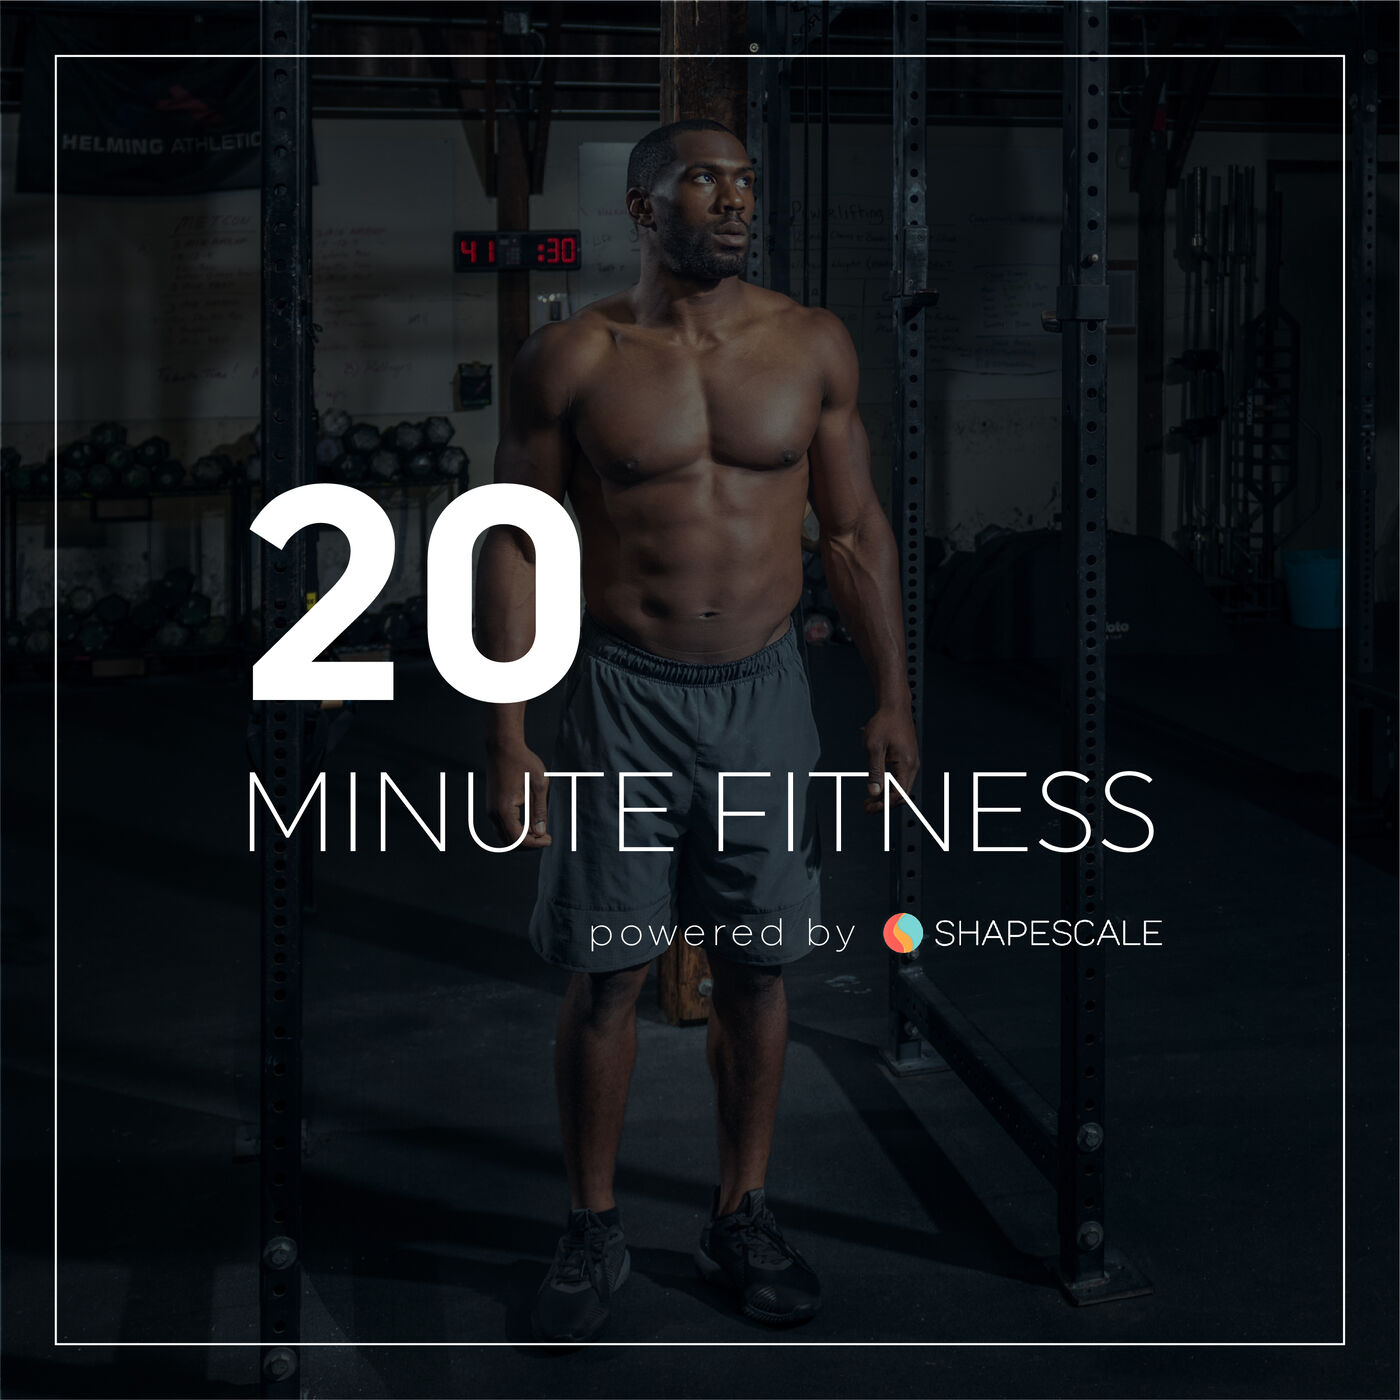 Tips On How To Succeed With Your New Years Resolutions & Form Habits That Really Stick - 20 Minutes Fitness Episode #221